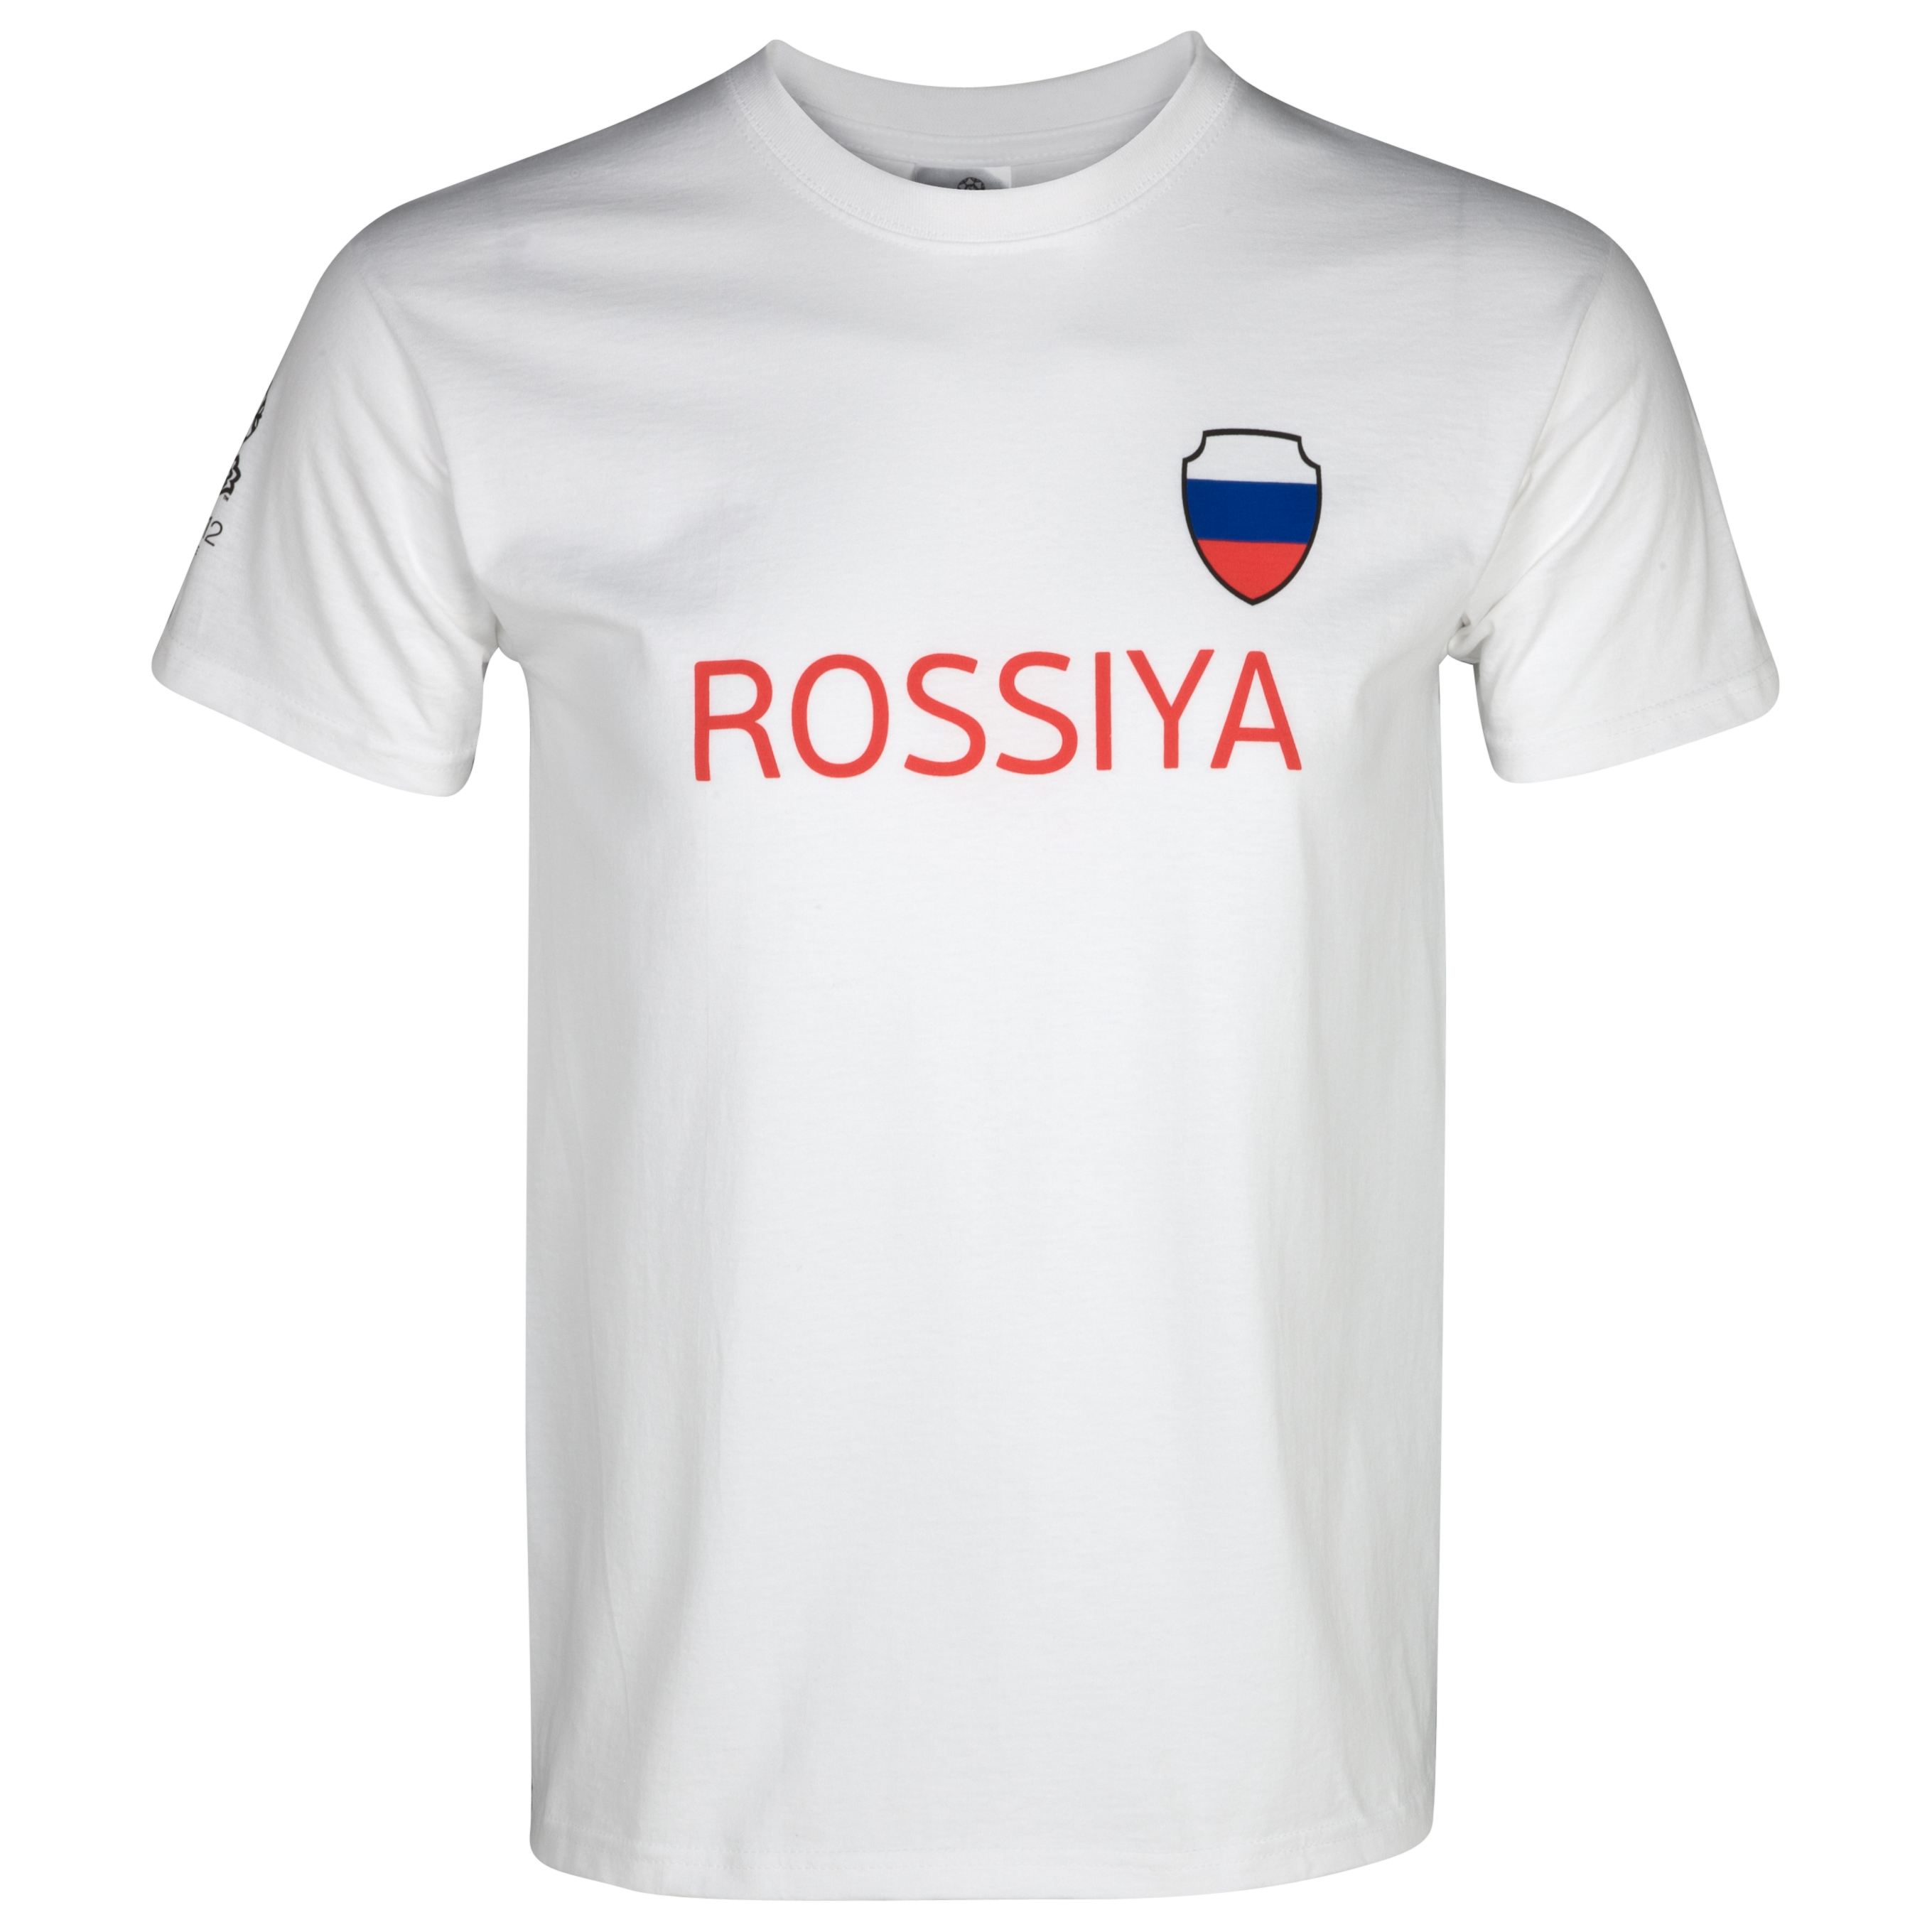 Euro 2012 Russia T-Shirt - White/Black/Red